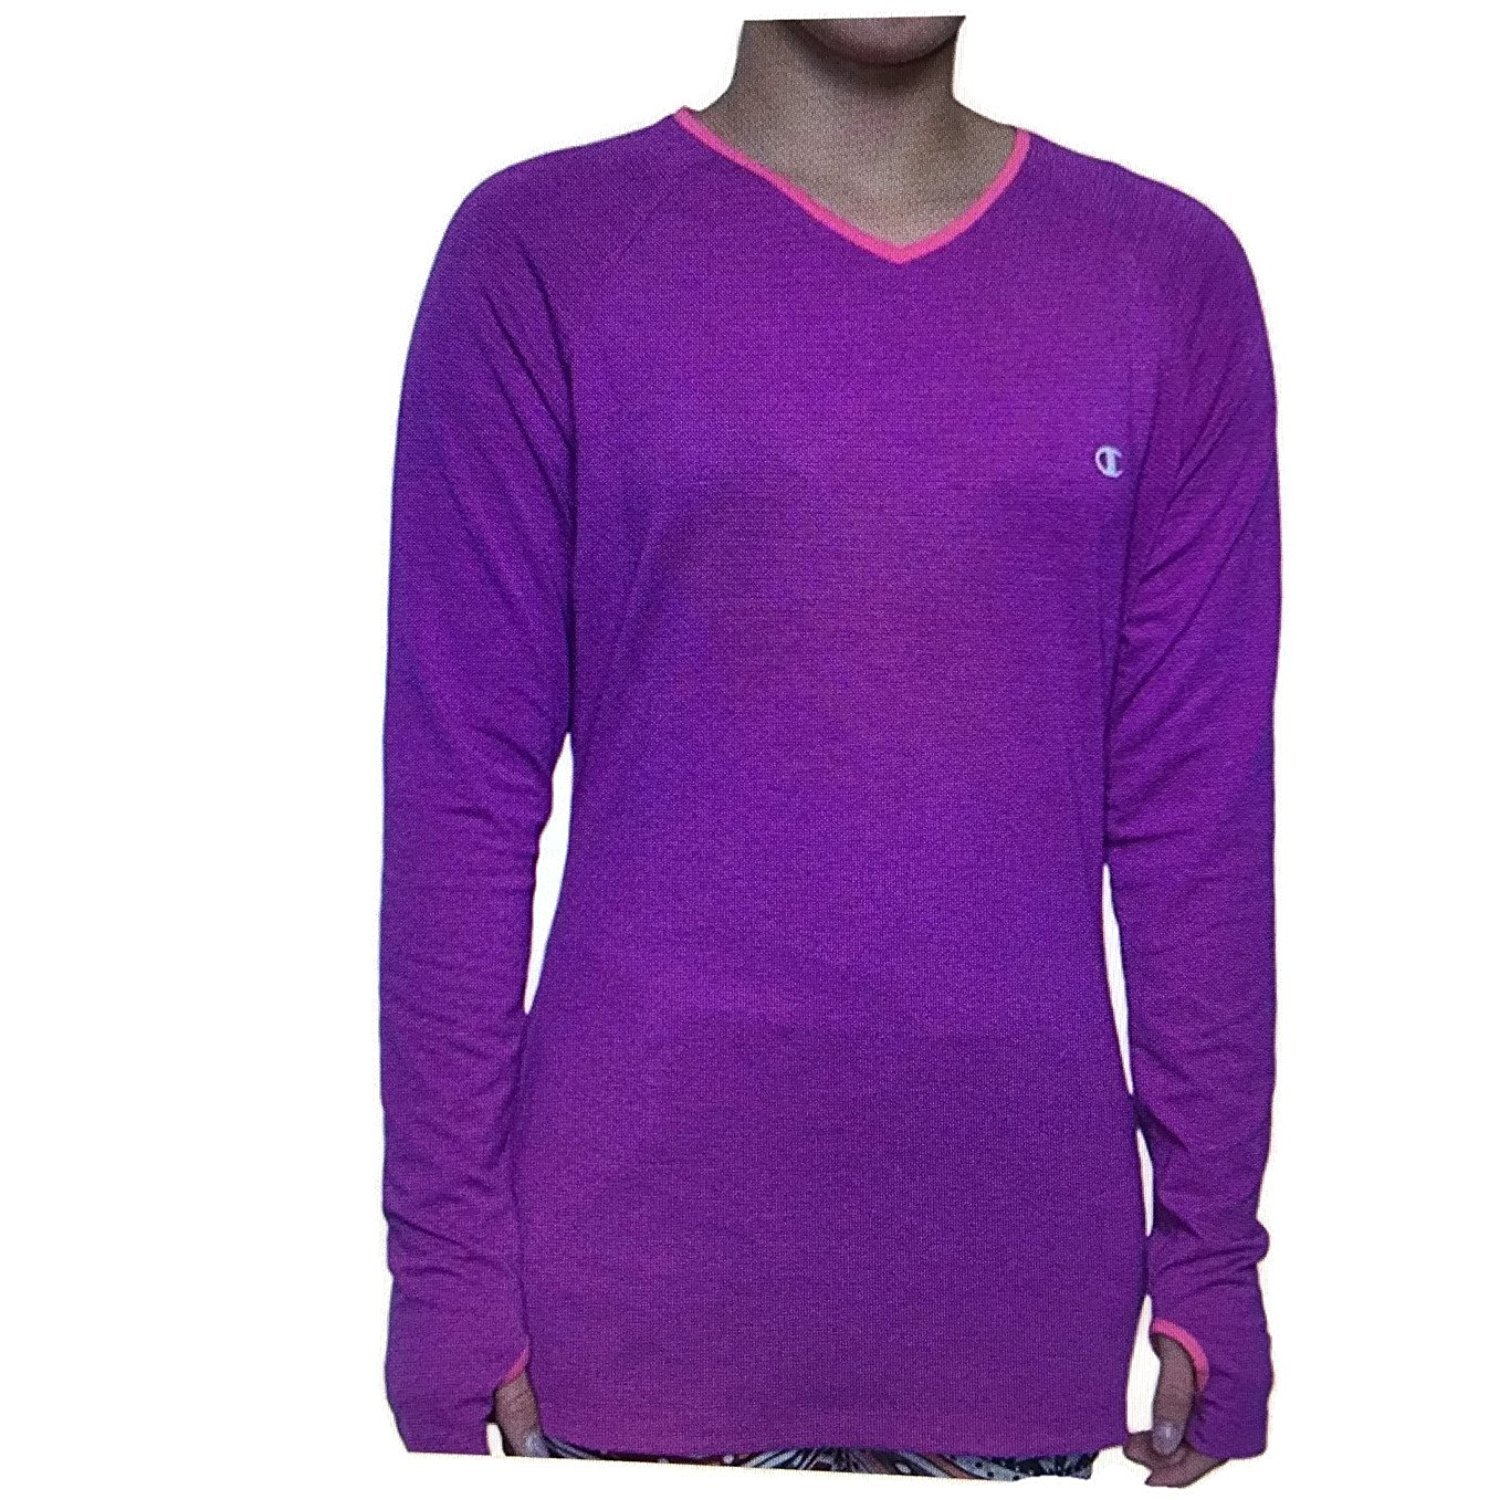 e8ff3f2c Champion Women's Active Yoga Athletic Long Sleeve Shirt Purple XXL at  Amazon Women's Clothing store: